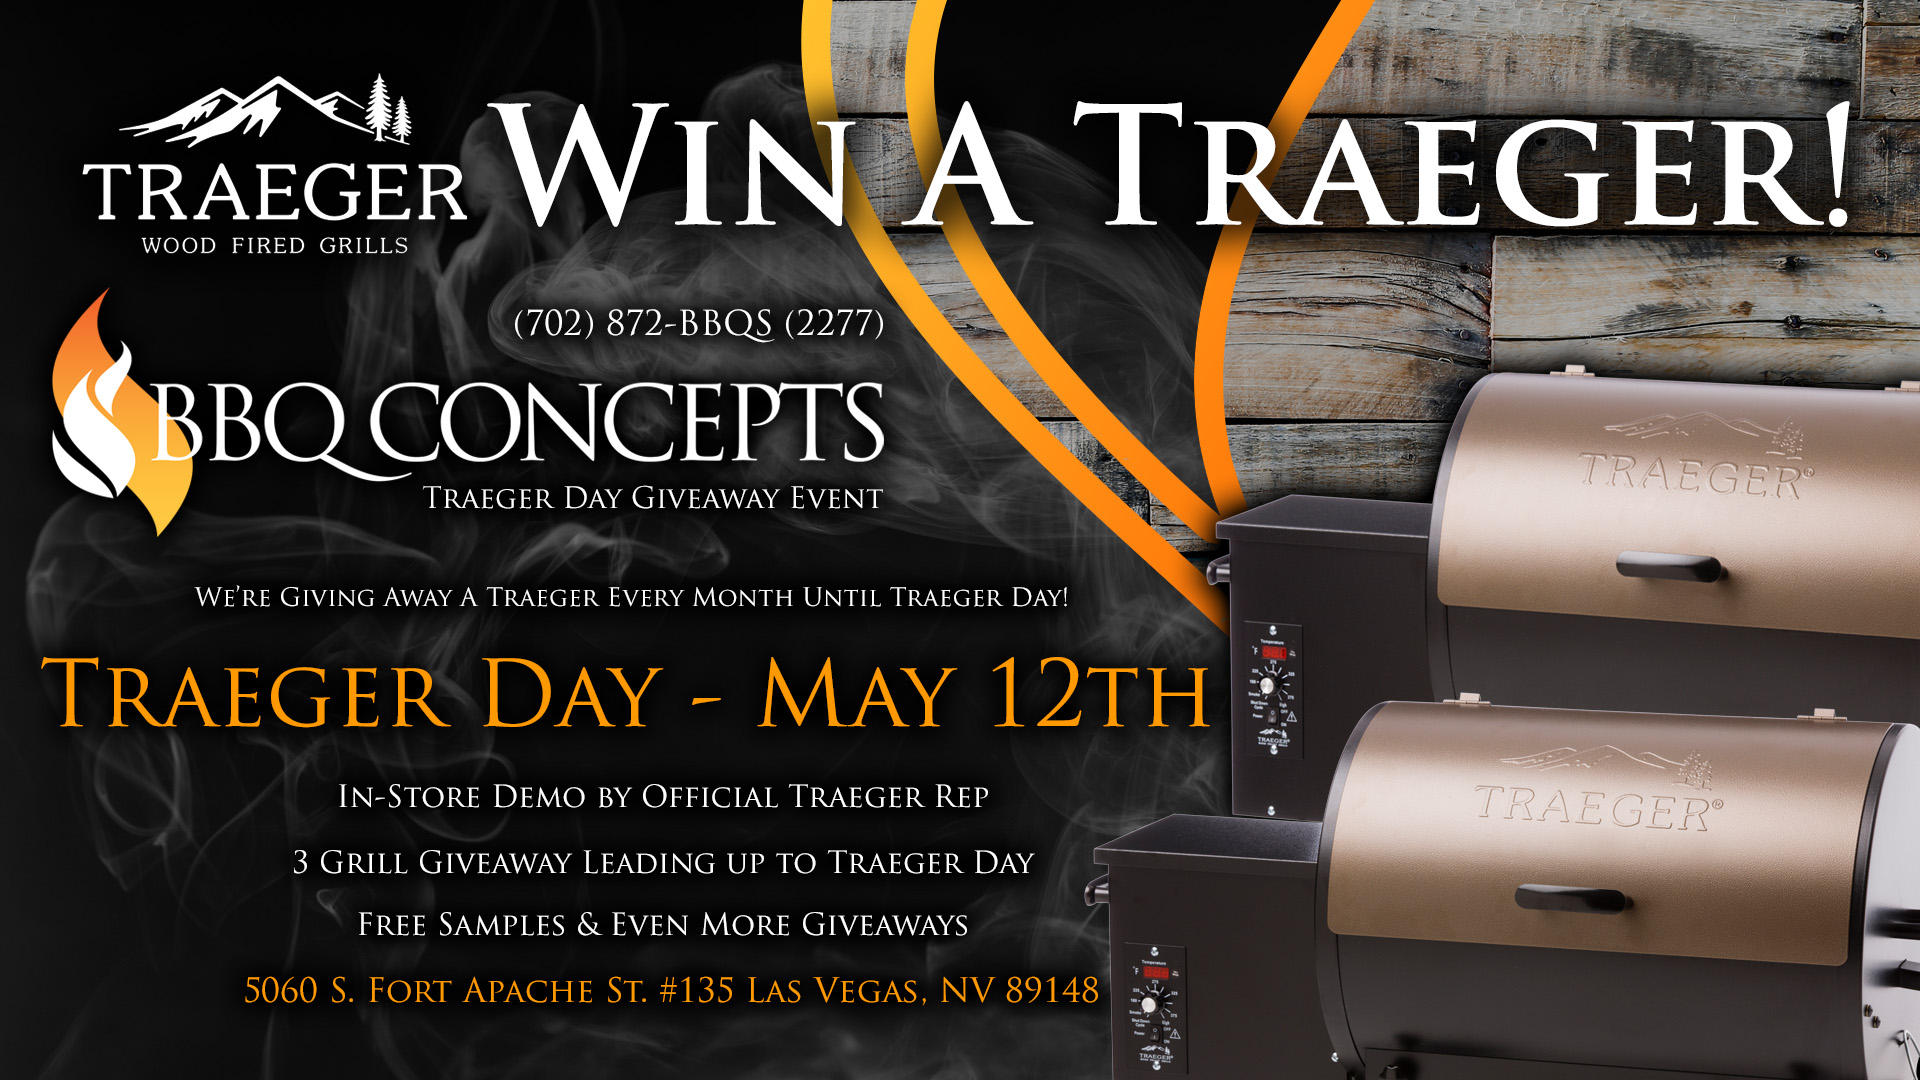 May 12th - Traeger Day at BBQ Concepts Event Promo